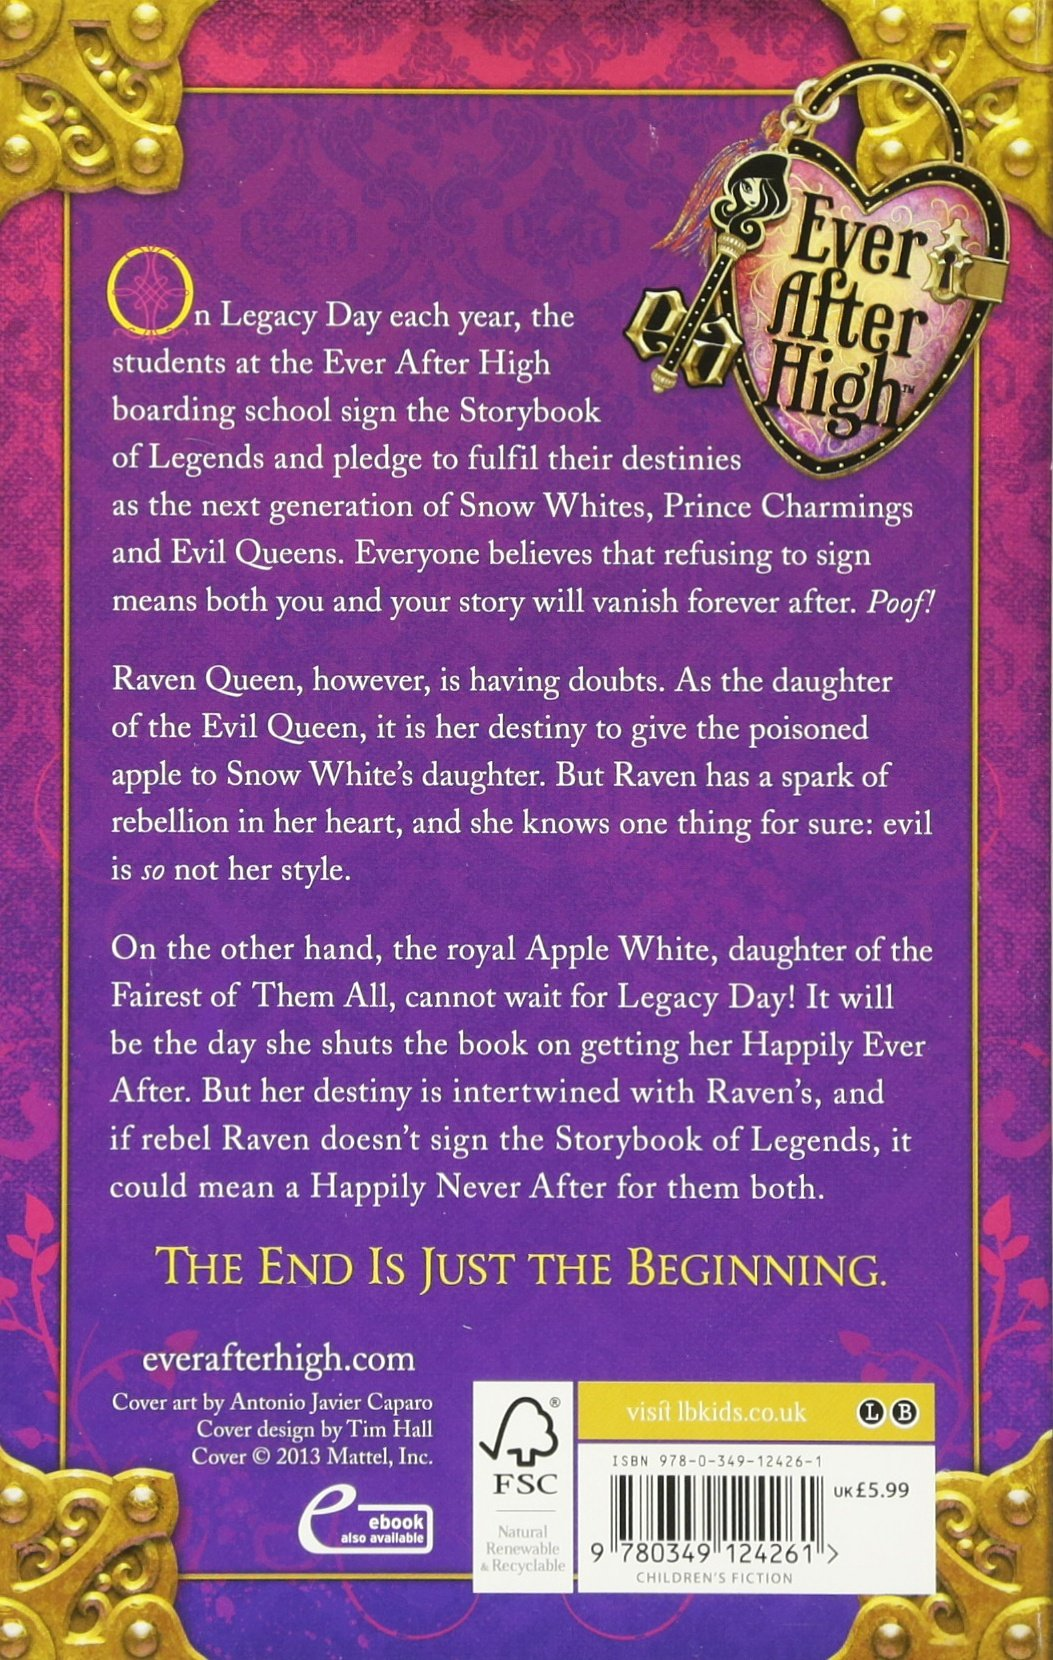 The Storybook Of Legends: Book 1 (ever After High): Amazon: Shannon  Hale: 8601404413193: Books